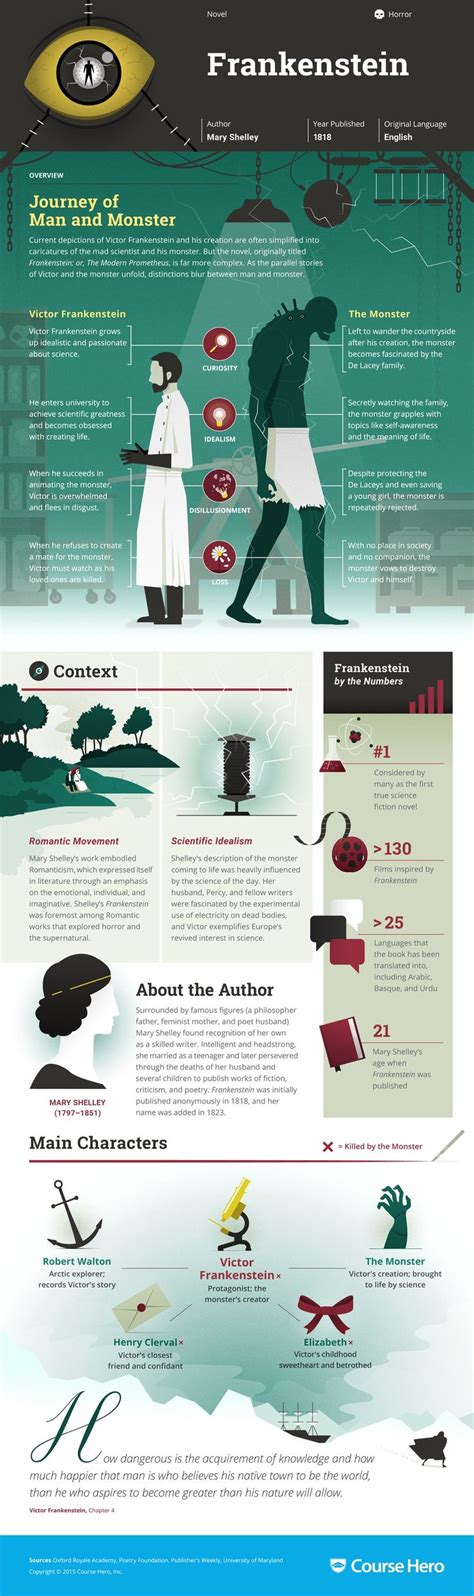 analysis of frankenstein chapter 8 best 25 frankenstein analysis ideas on pinterest